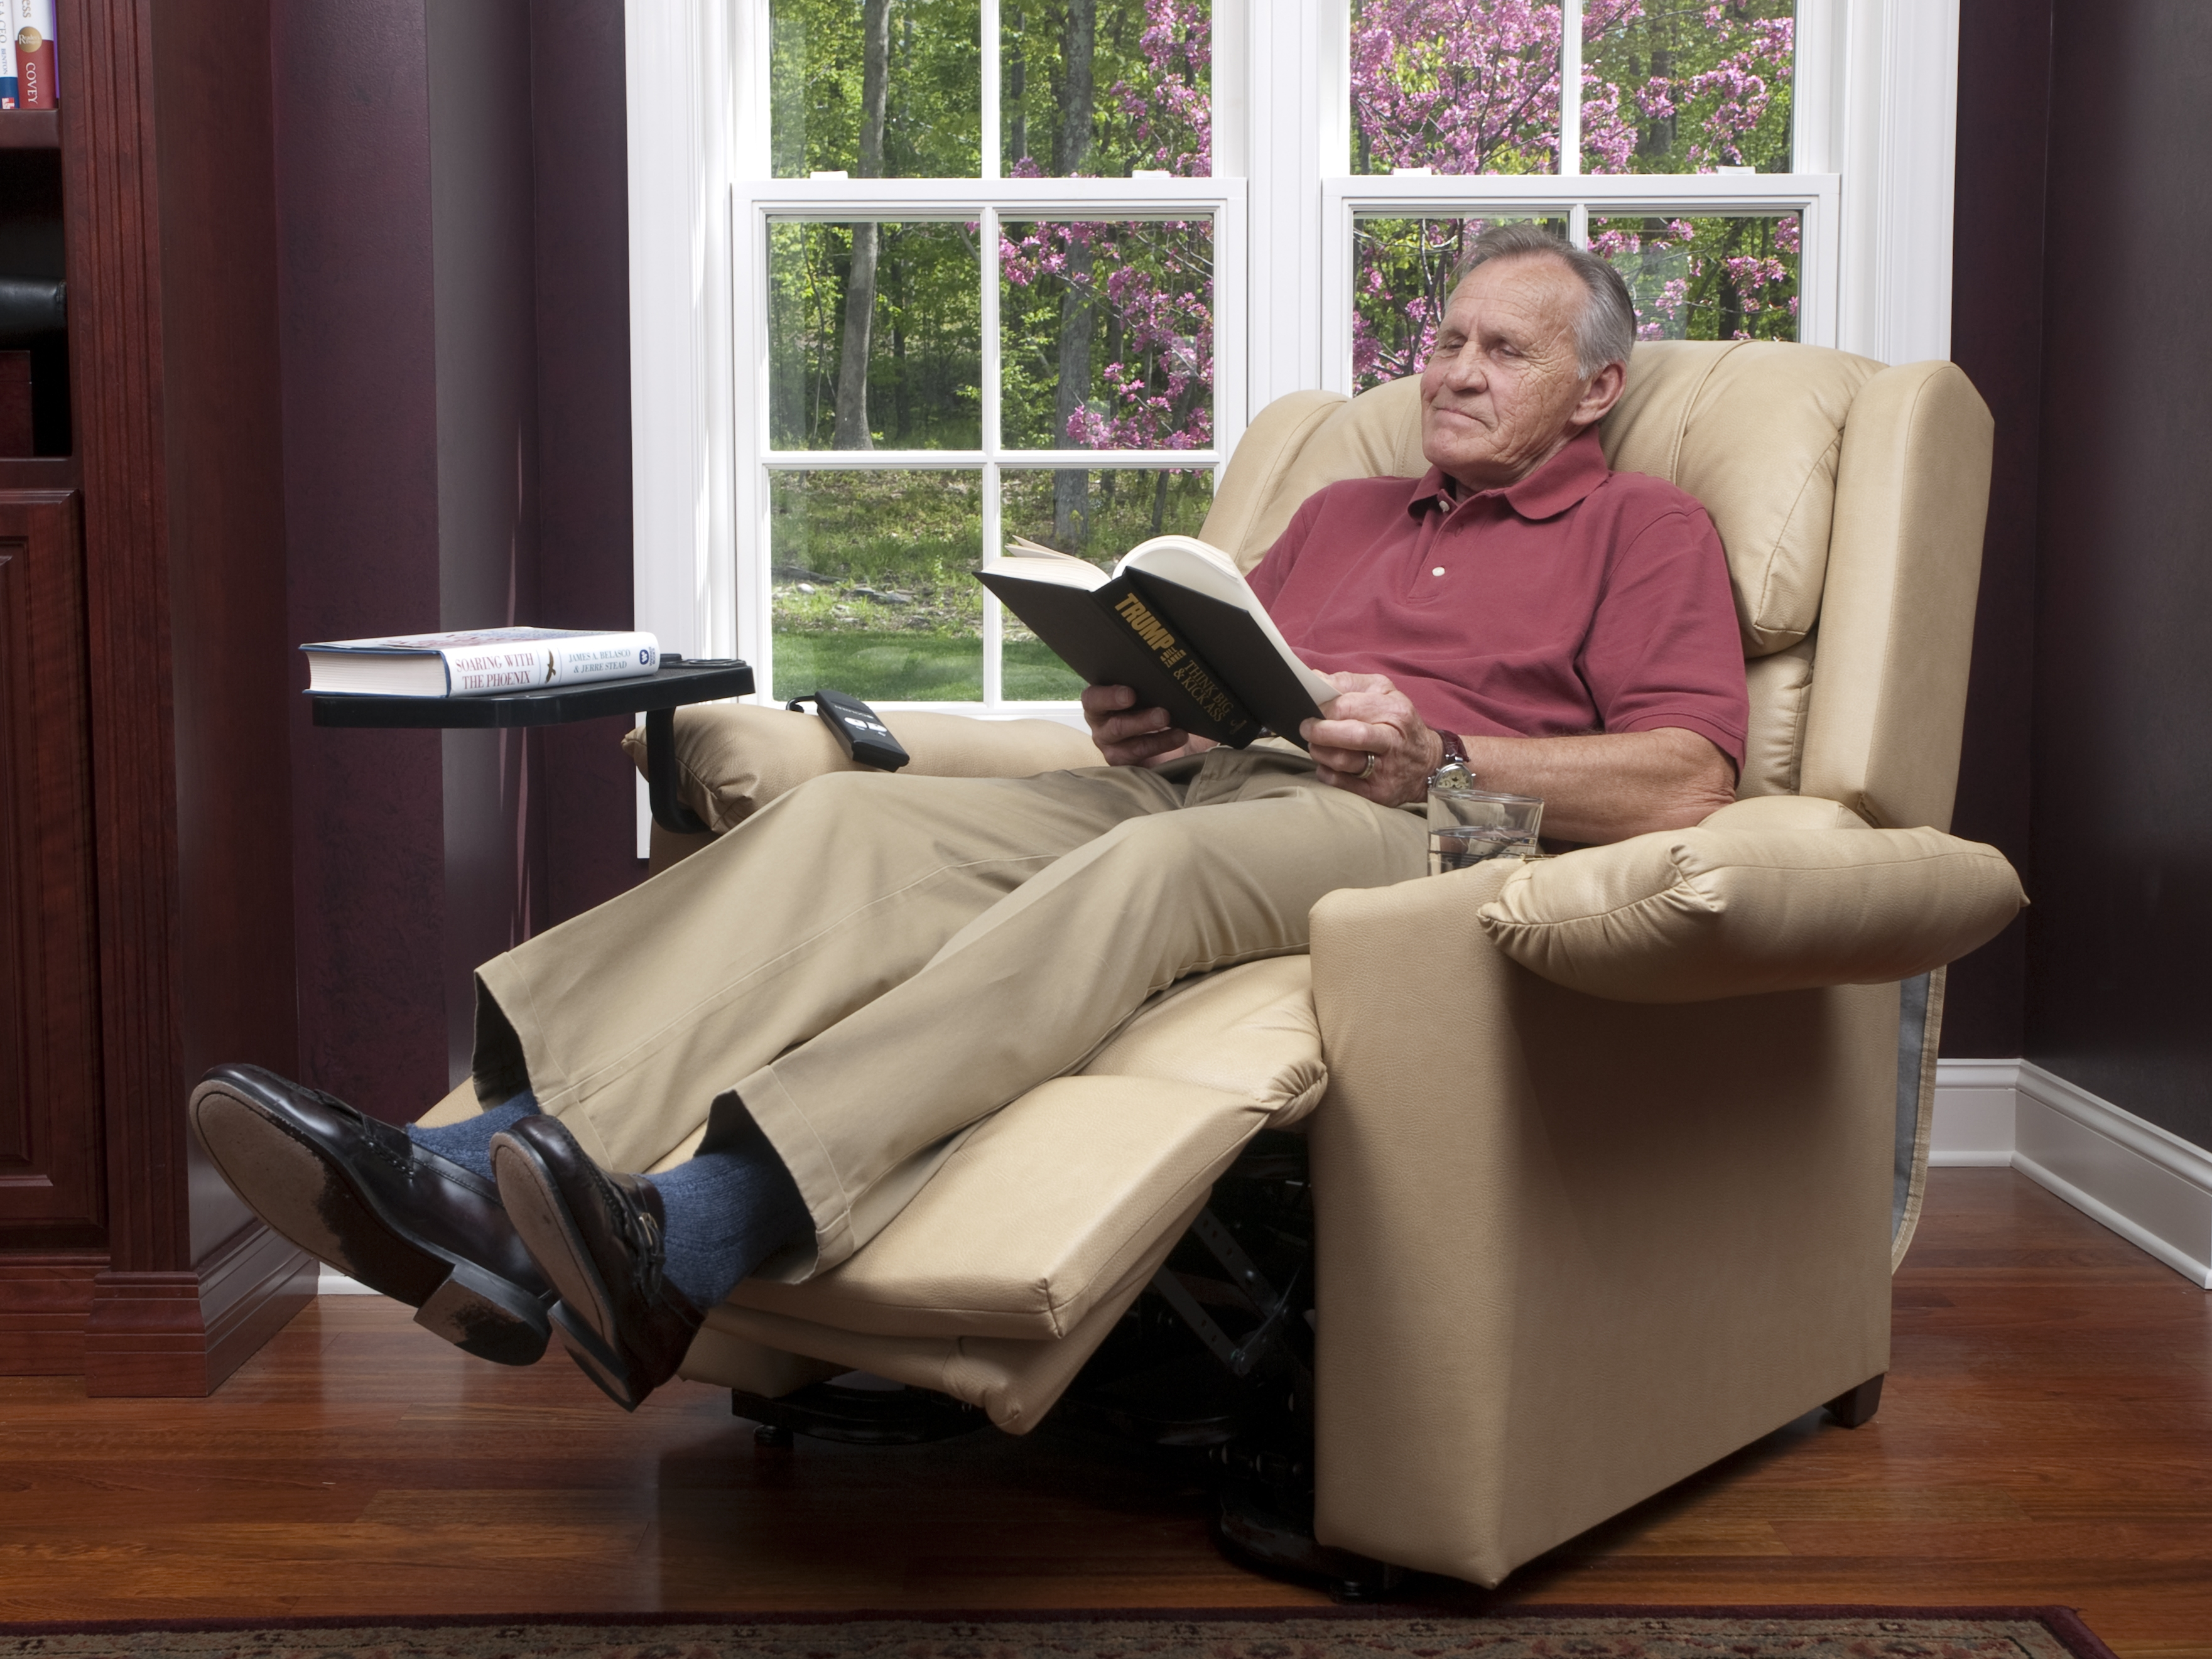 Medical Equipment pany fers The Best in Lift Chair Recliners